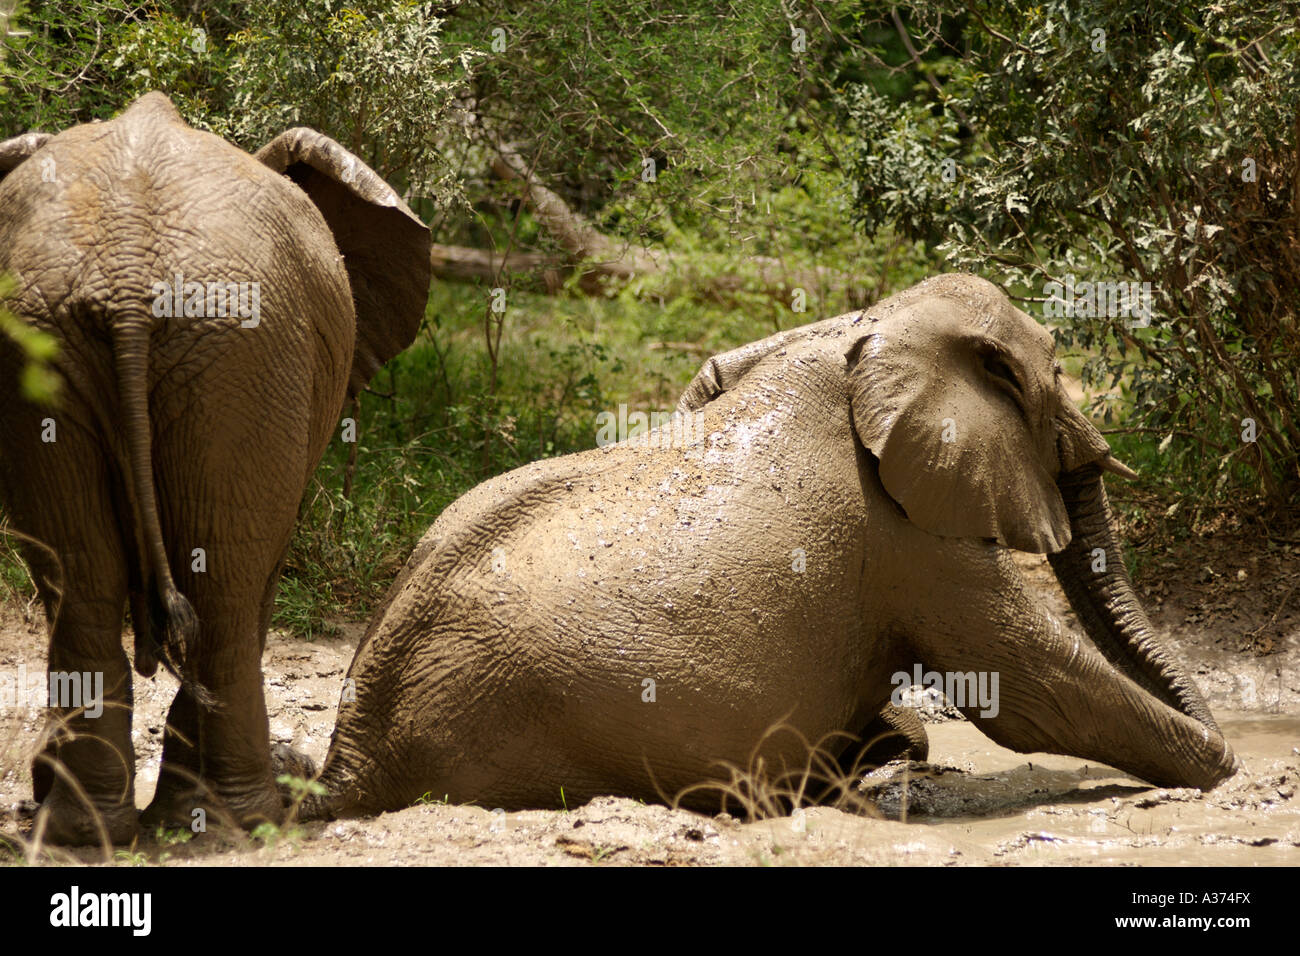 Elephants (Loxodonta Africana) wallowing in a mud bath in South Africa's Kruger National Park. - Stock Image